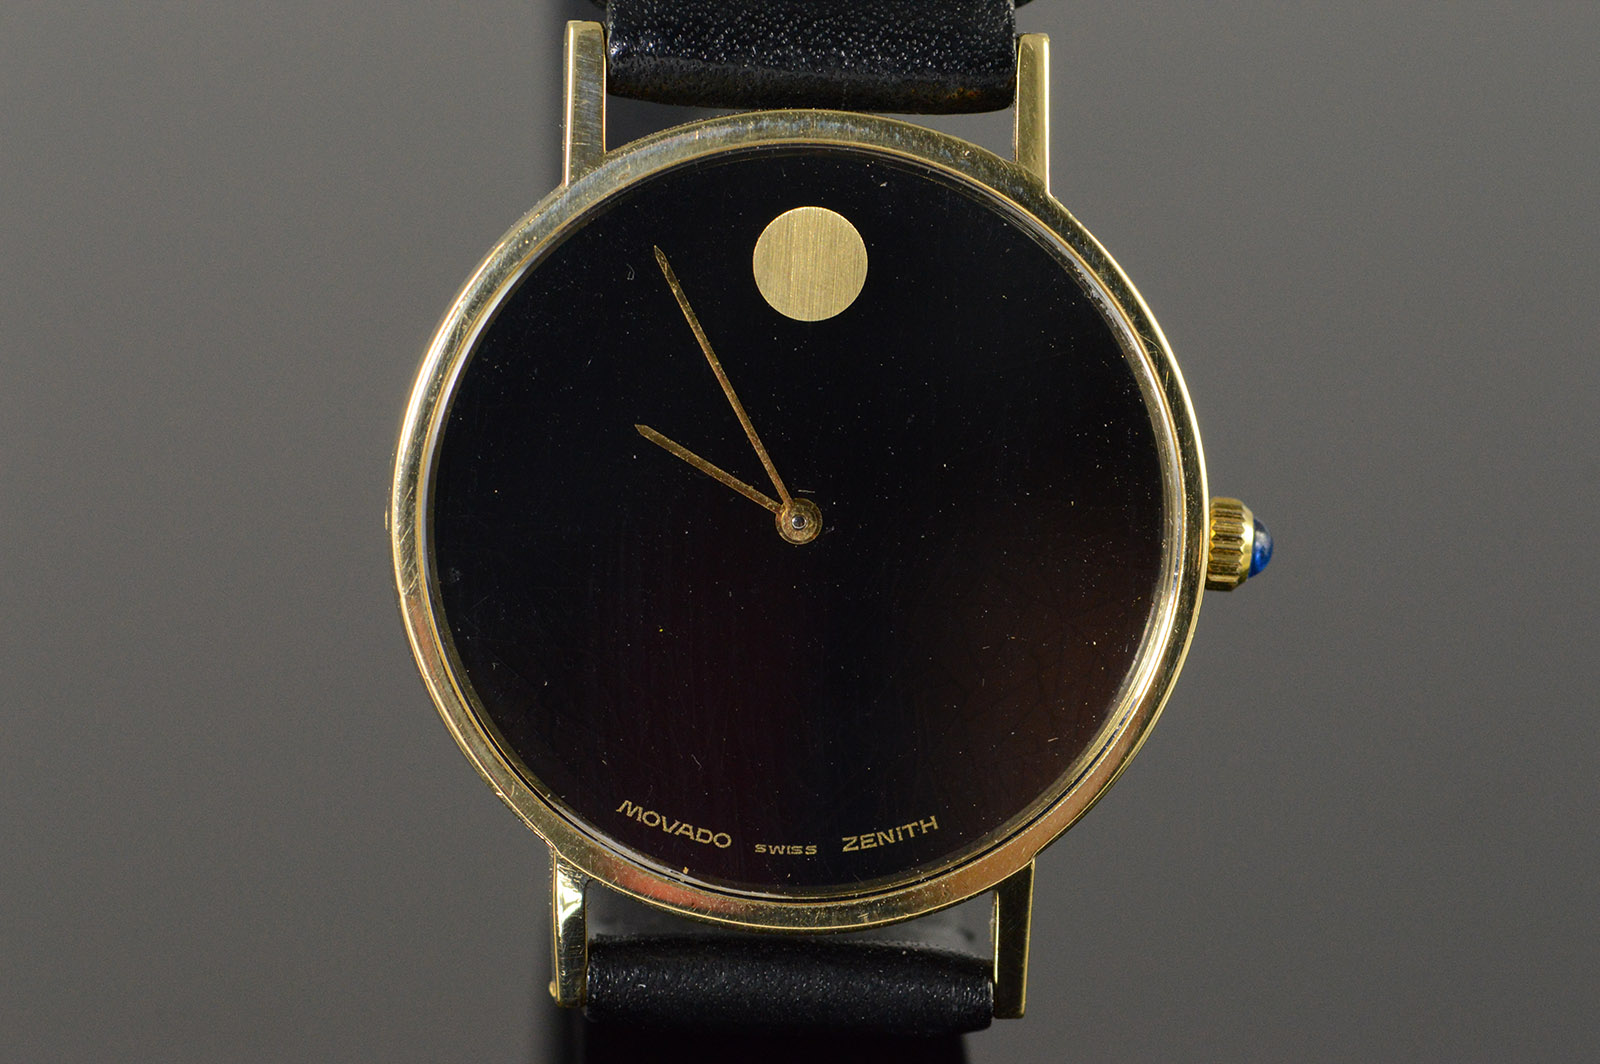 Museum 30mm Face Movado Zenith Movement 36 2190 305